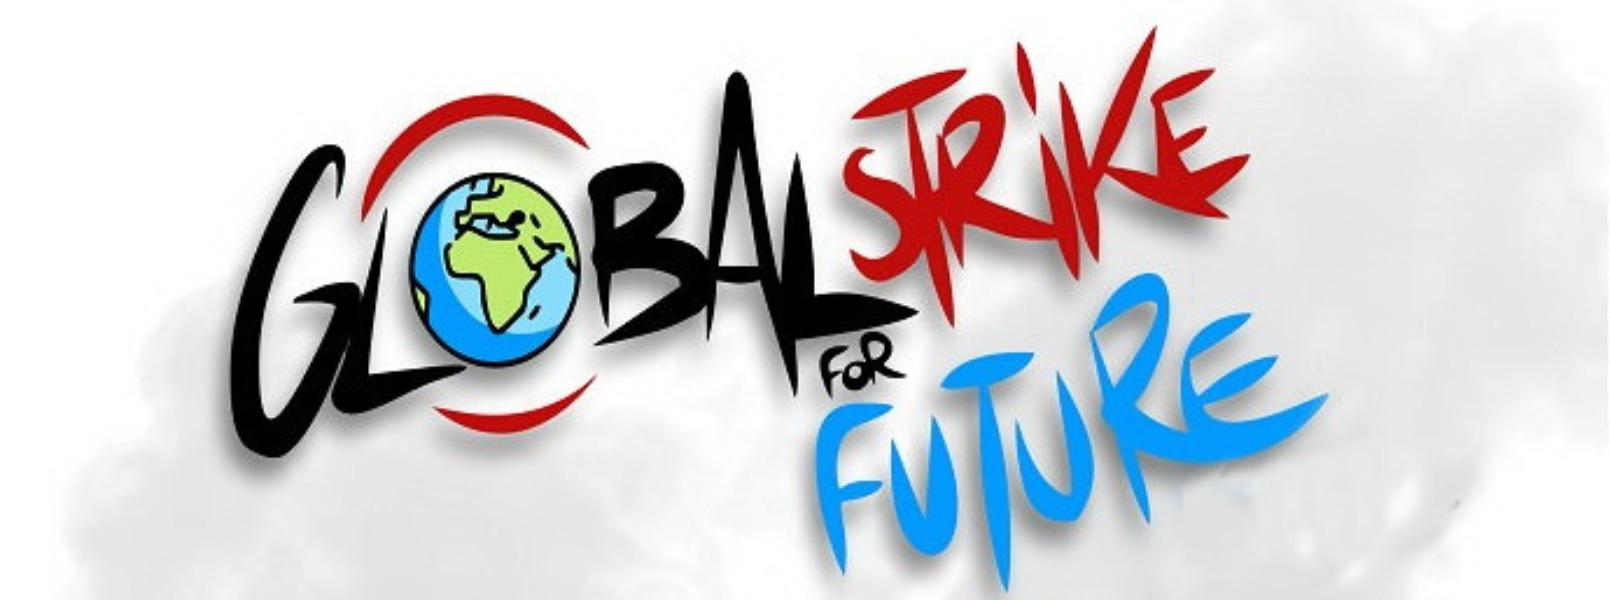 Partecipazione dell'I. C. Colli a Volturno al 3° Global Strike For Future